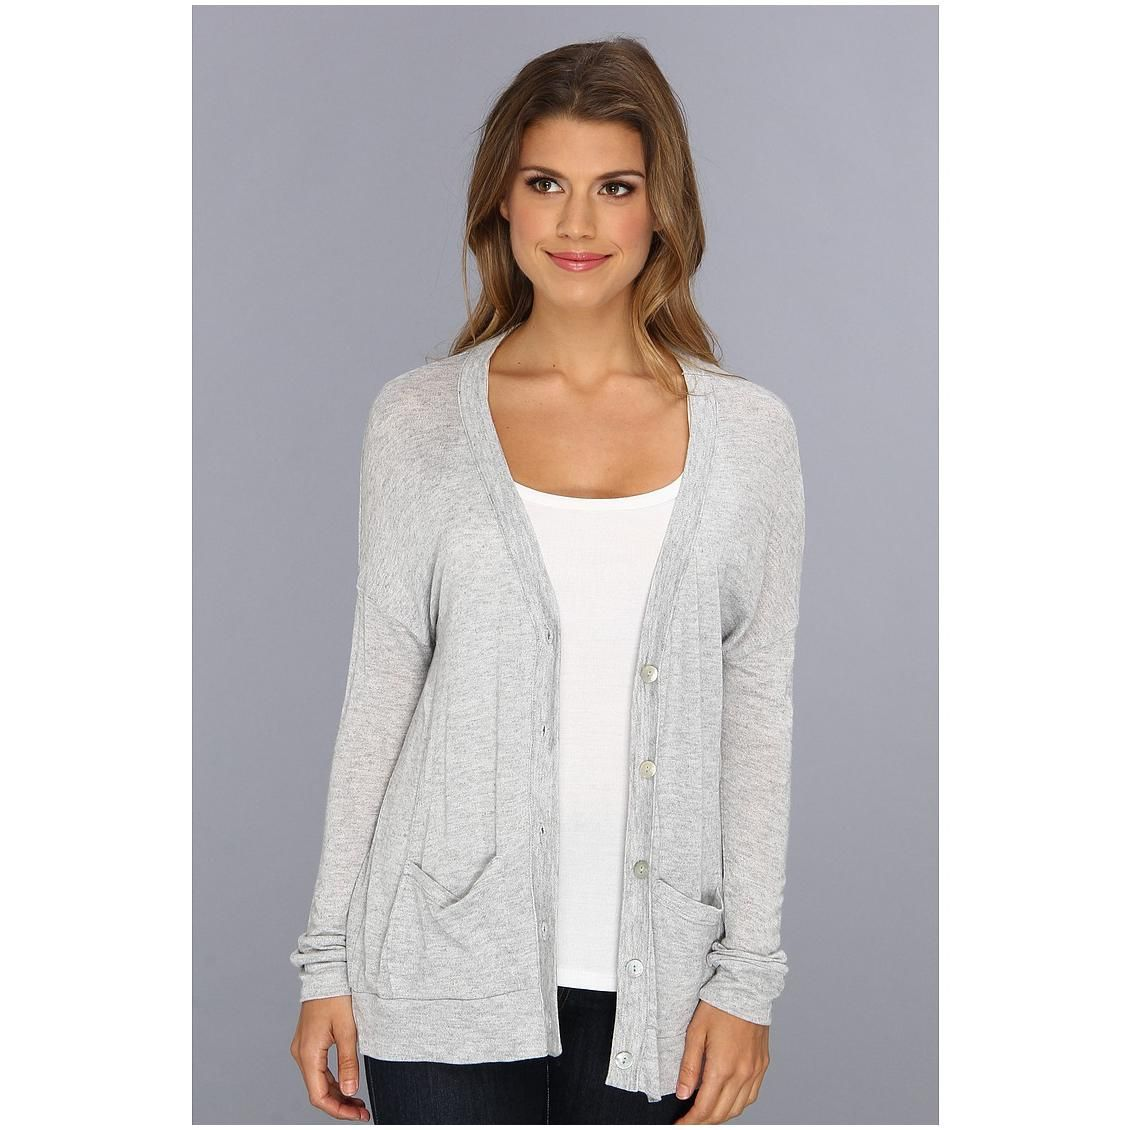 Best Women Cardigan 1 1 | tenuestyle | Best Women Cardigan | Pinterest